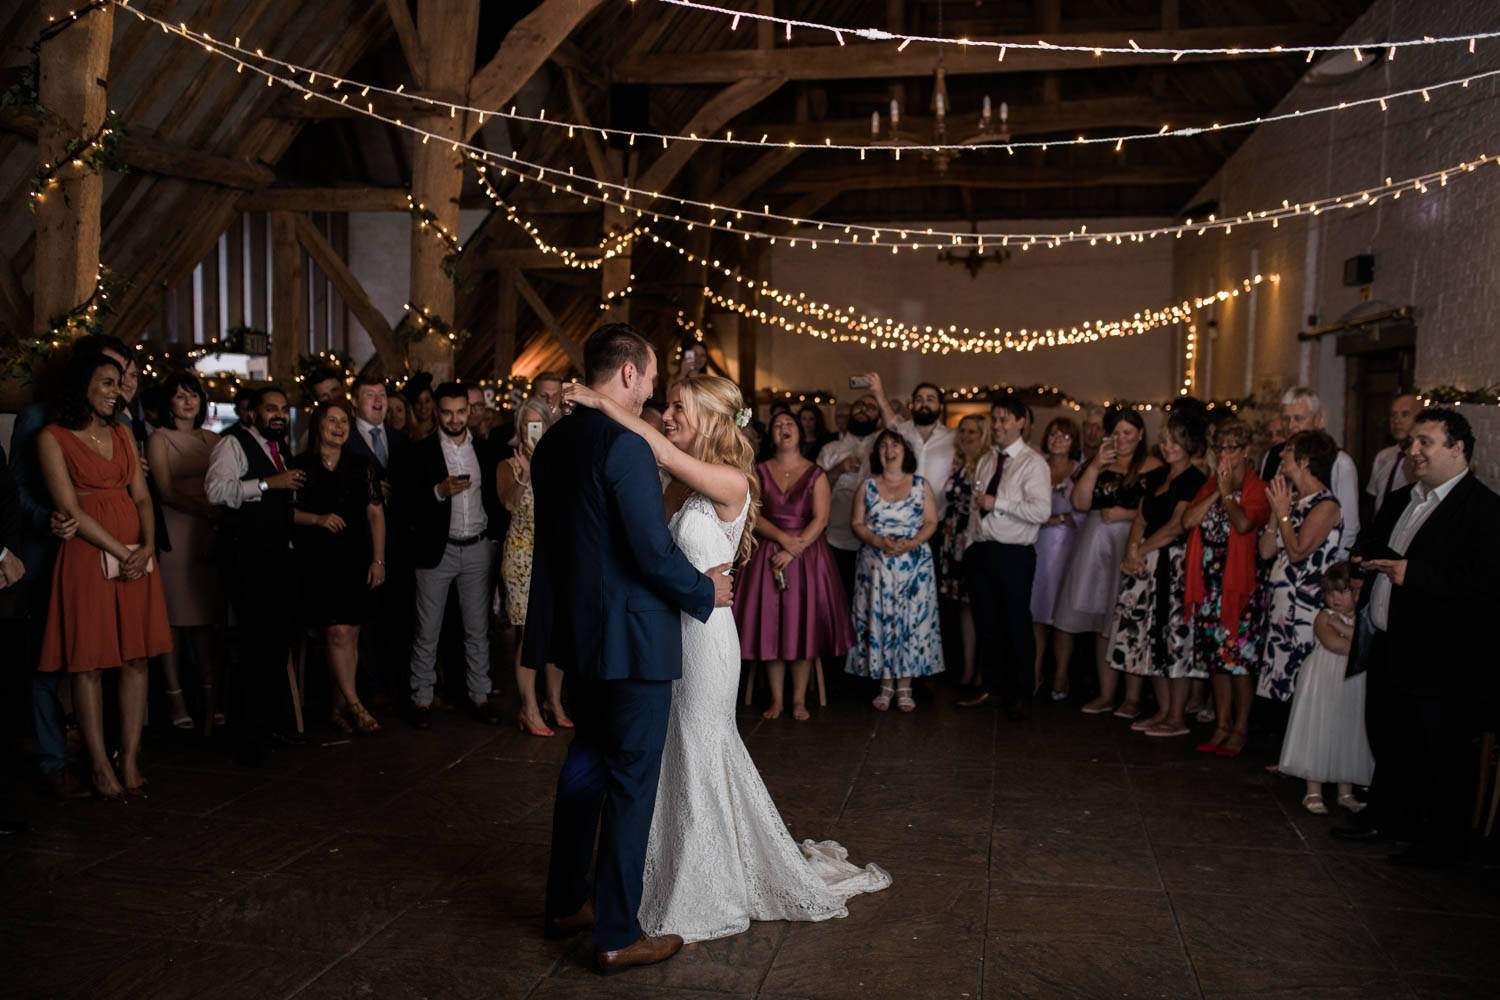 ufton-court-reading-wedding-photographer-lindsleyweddings-67.jpg